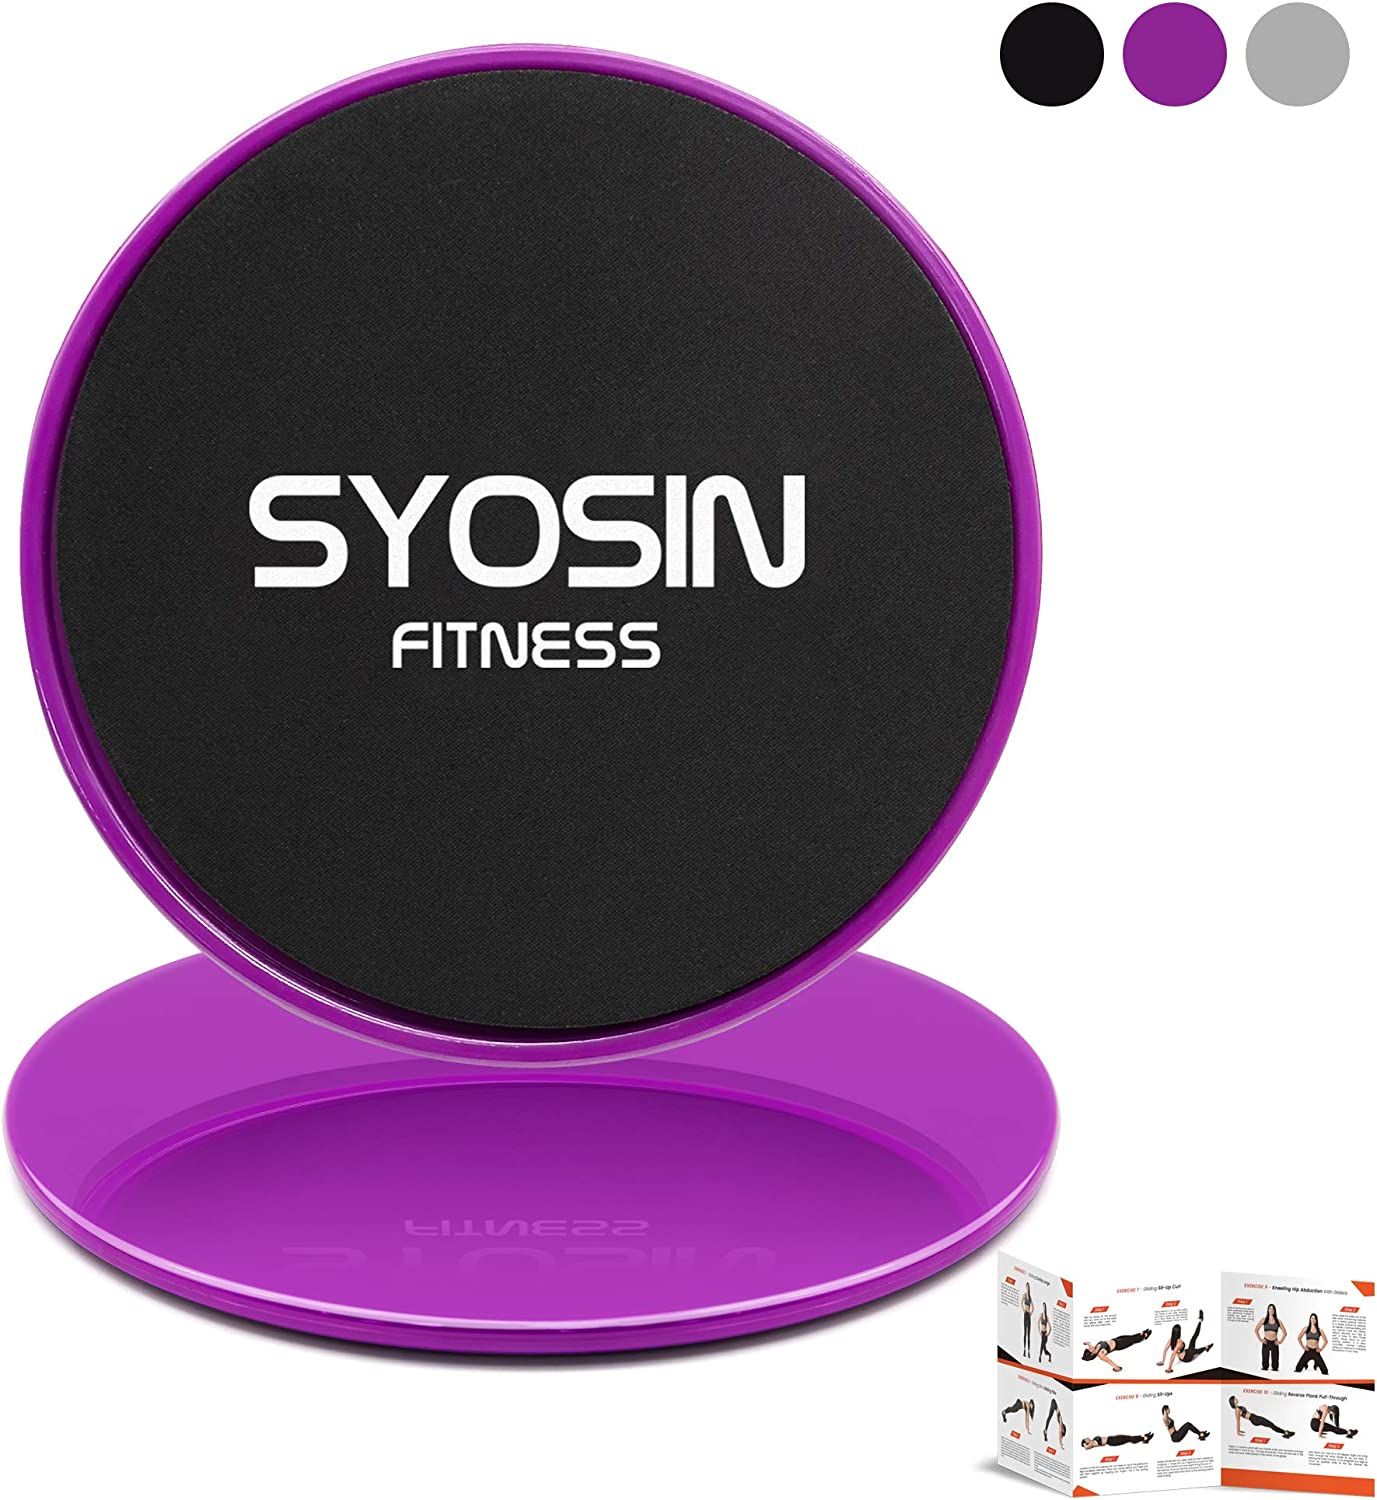 Pilates Yoga 2 Pack Dual Disks Sliders Fitness Sliders Ideal for Gym Strengthen Abdominal Body Building Home Burn Fat YUHENGLE Exercise Core Sliders Improve Balance